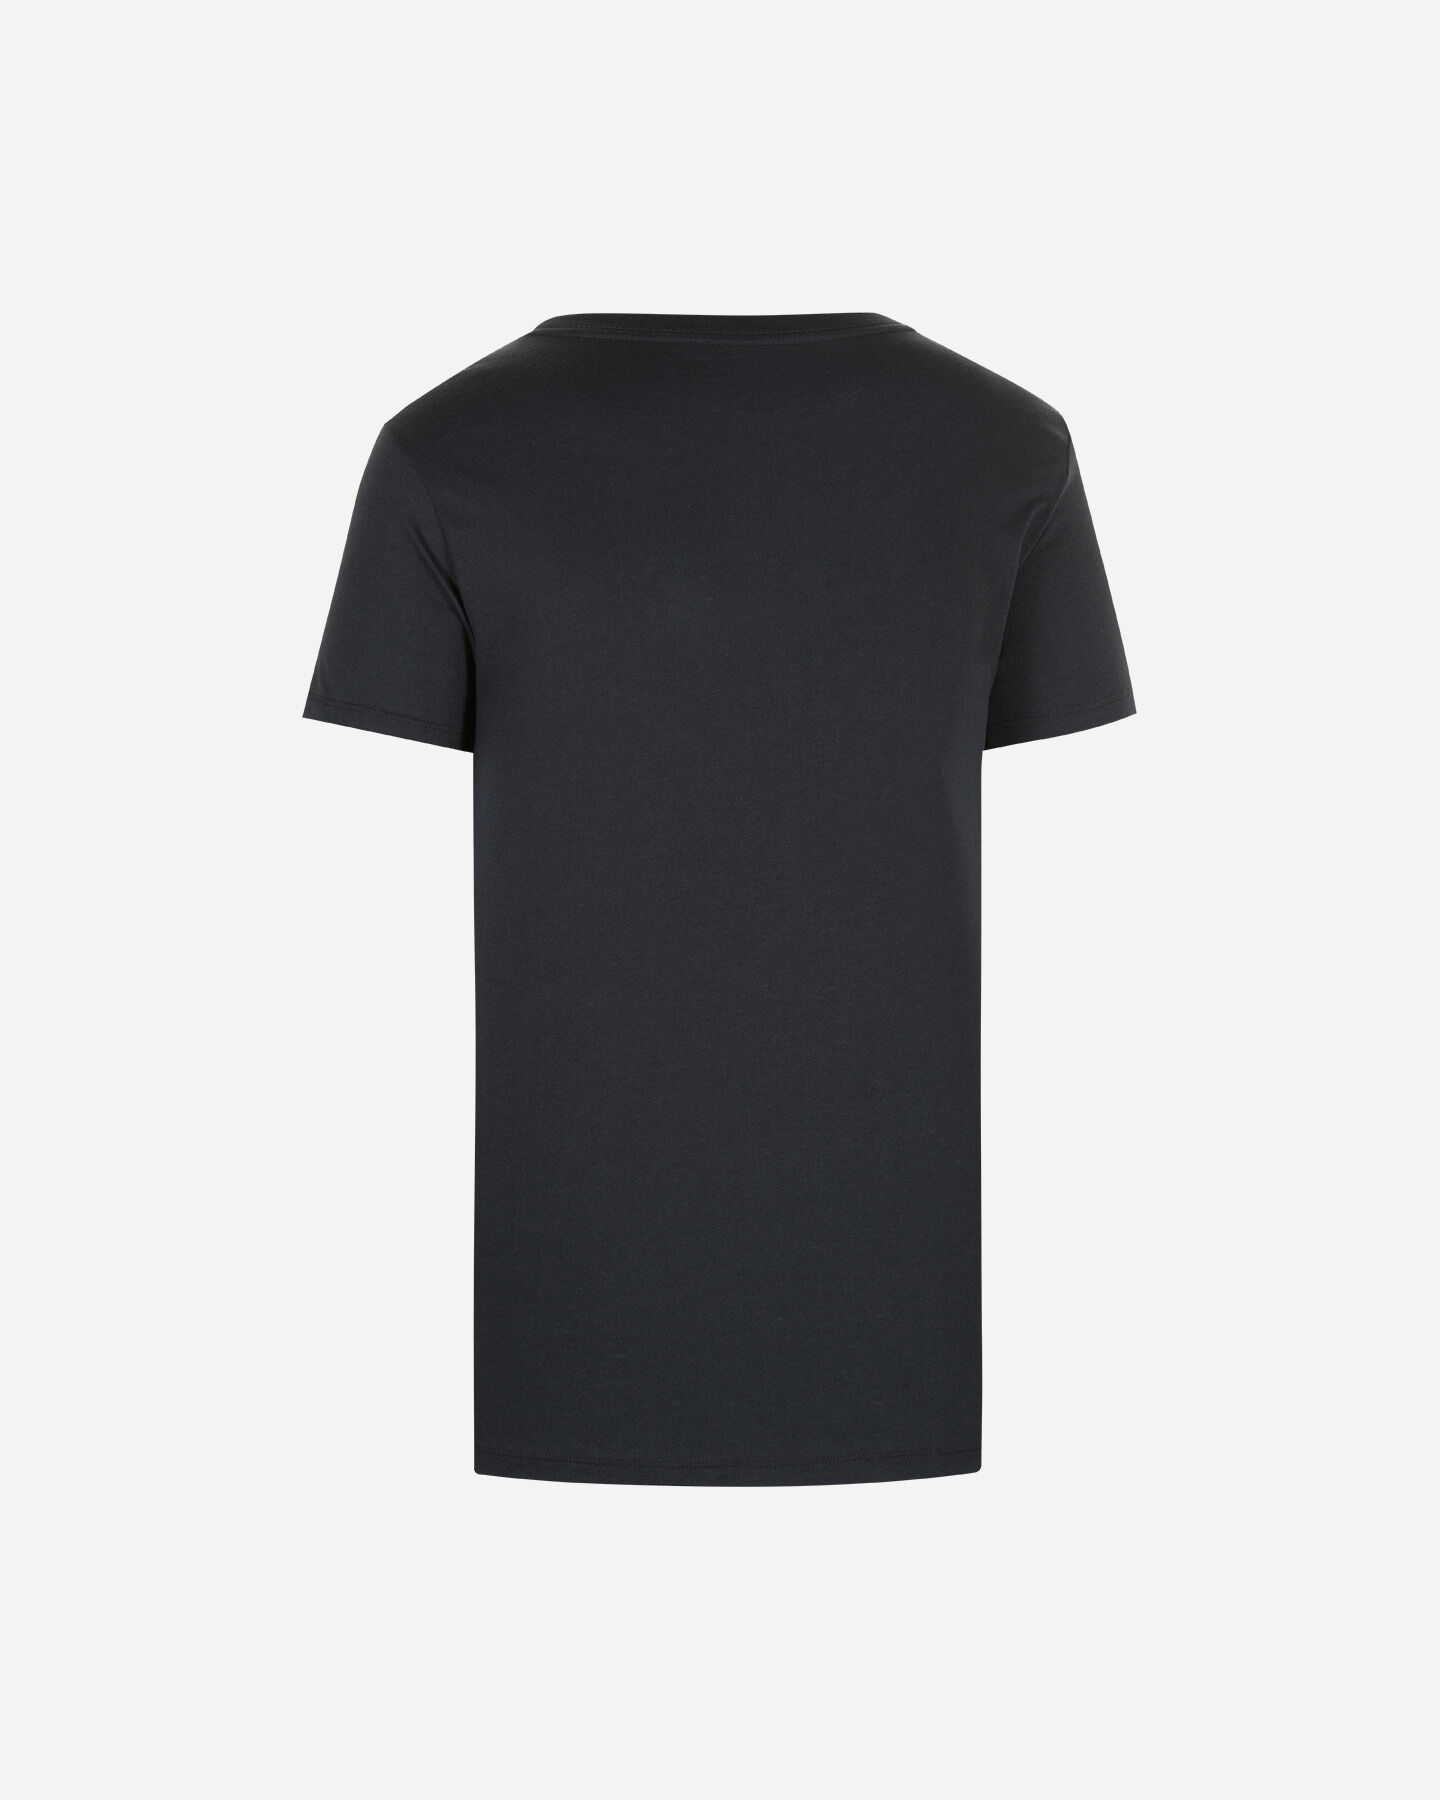 T-Shirt training UNDER ARMOUR BIG LOGO W S5168683 scatto 1